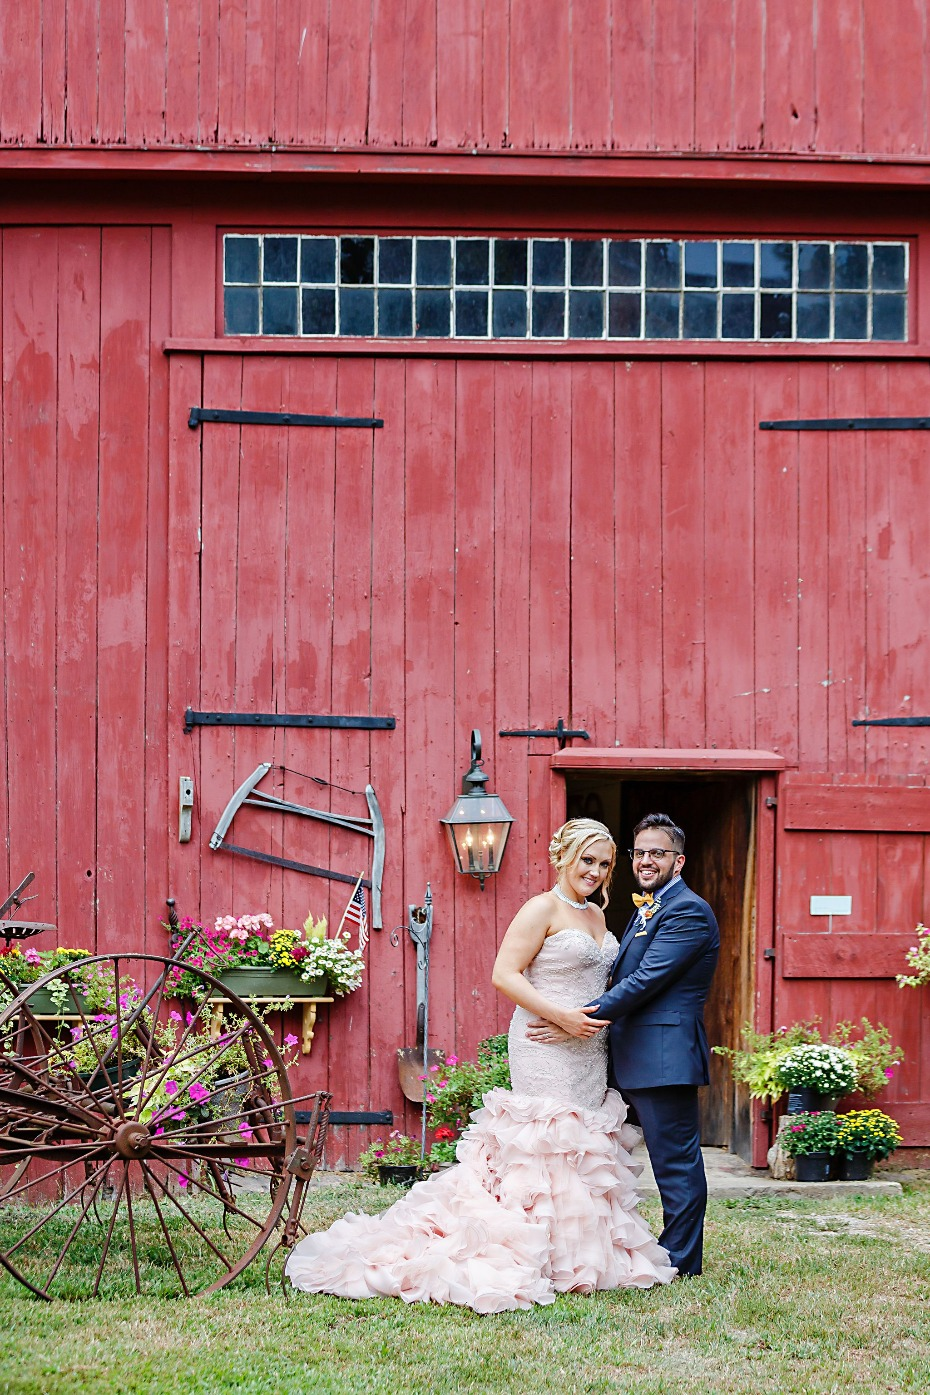 pink-wedding-dress-nh-barn-backyard-wedding